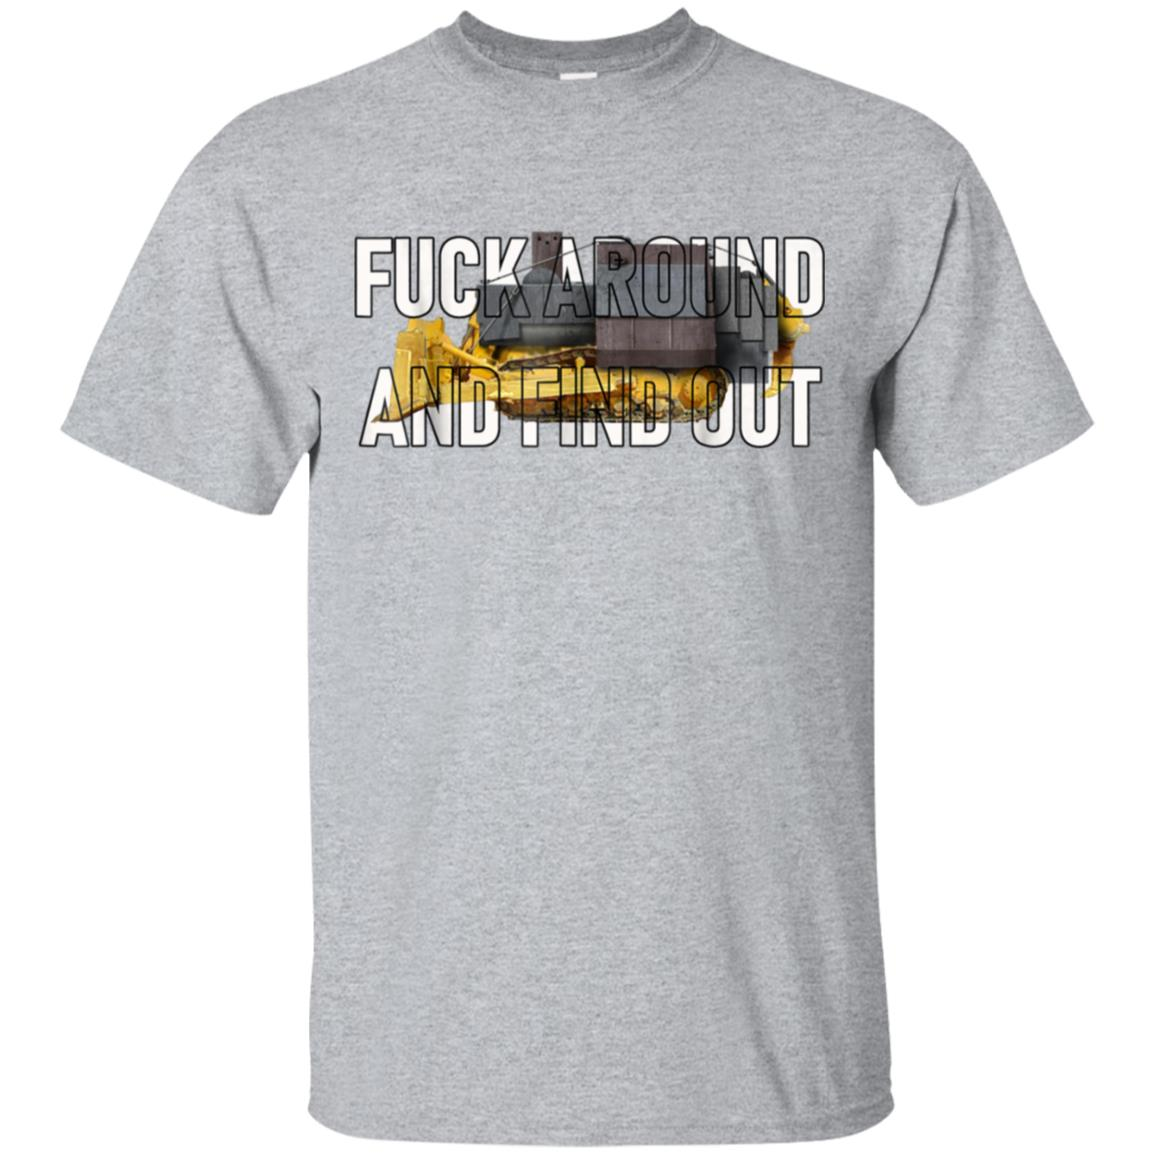 Fuck around and find out dozer funny t-shirt 99promocode